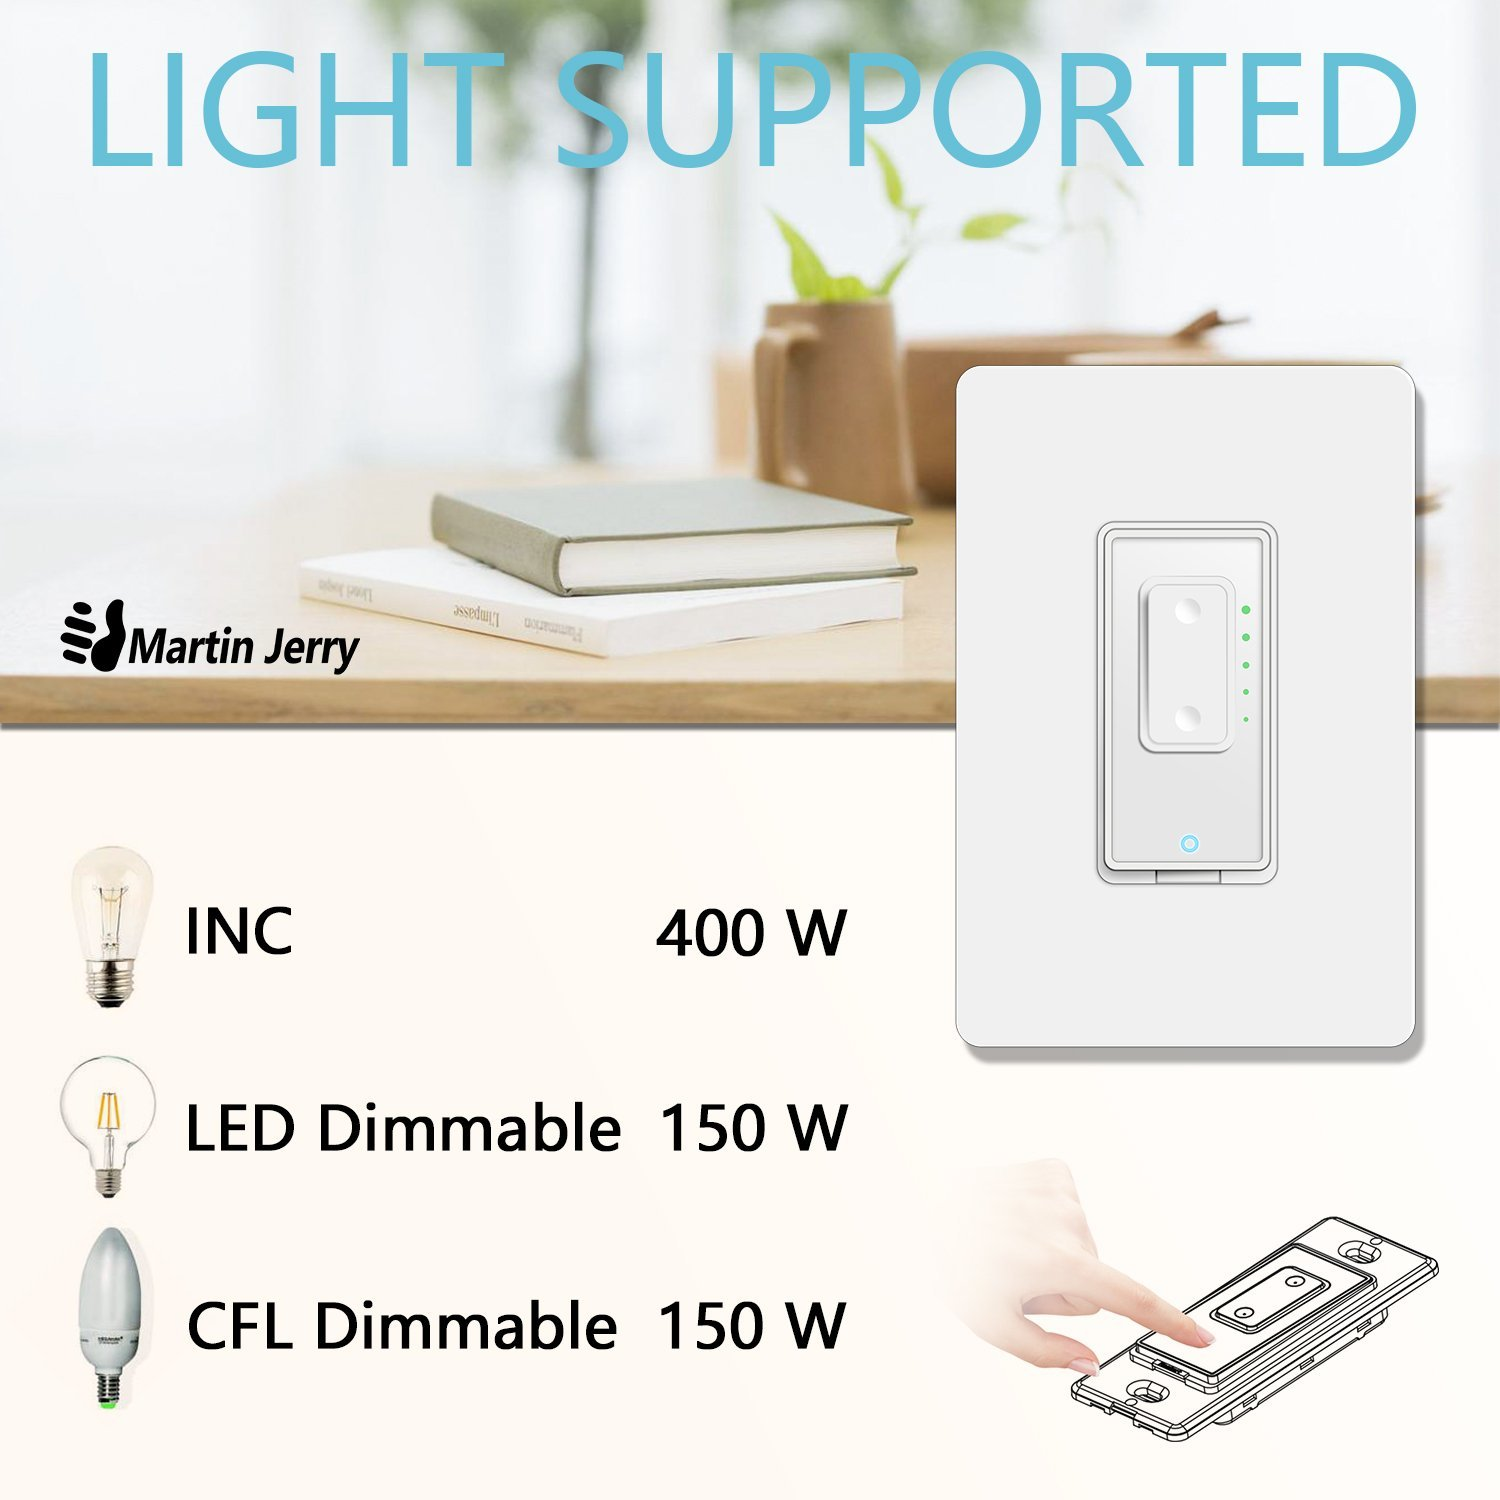 Smart Dimmer Switch by Martin Jerry | SmartLife App, Mains Dimming ONLY, Compatible with Alexa as WiFi Light Switch Dimmer, Single Pole, Works with Google Assistant [For Sale NOW] by Martin Jerry (Image #5)